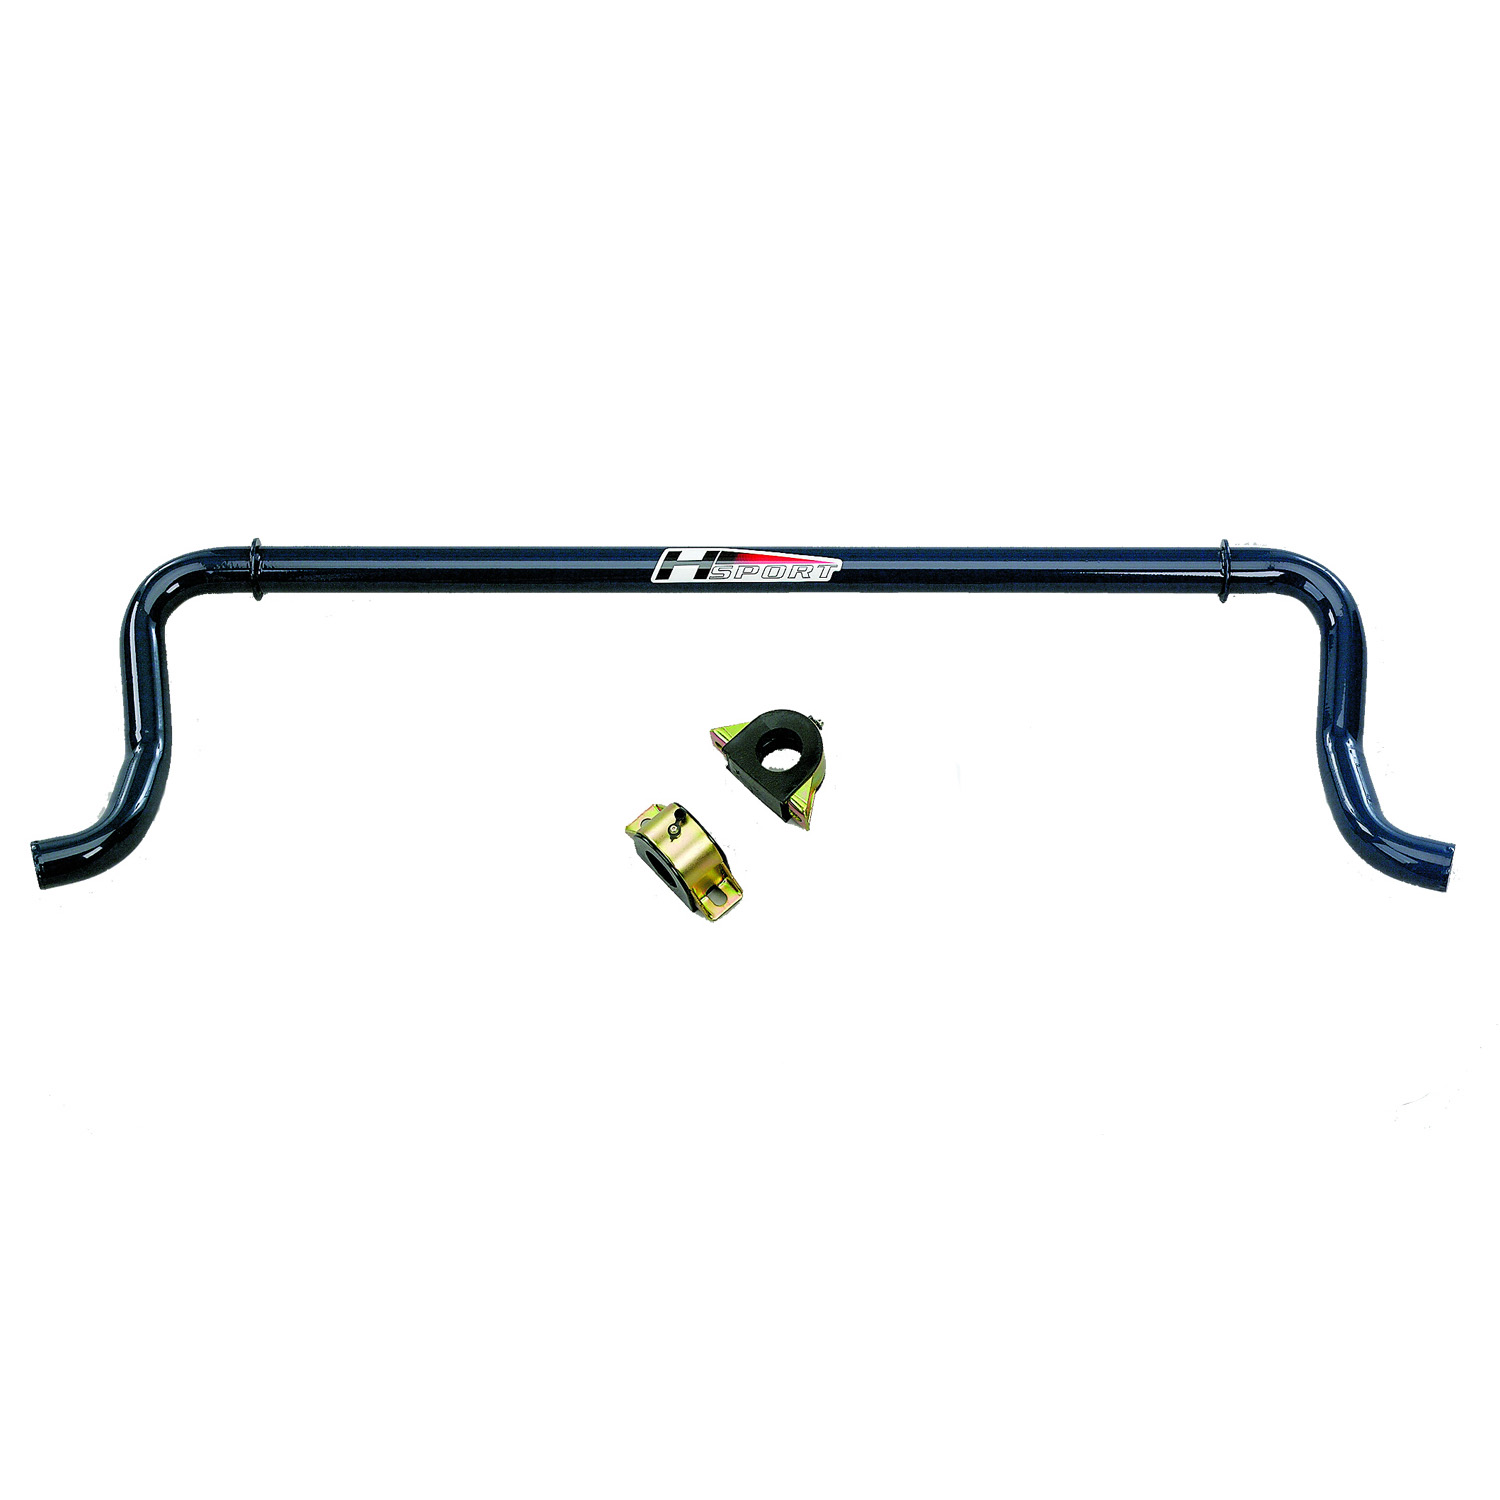 1996-2001 Audi A4/S4  B5 Front Sport Sway Bar Set from Hotchkis Sport Suspension